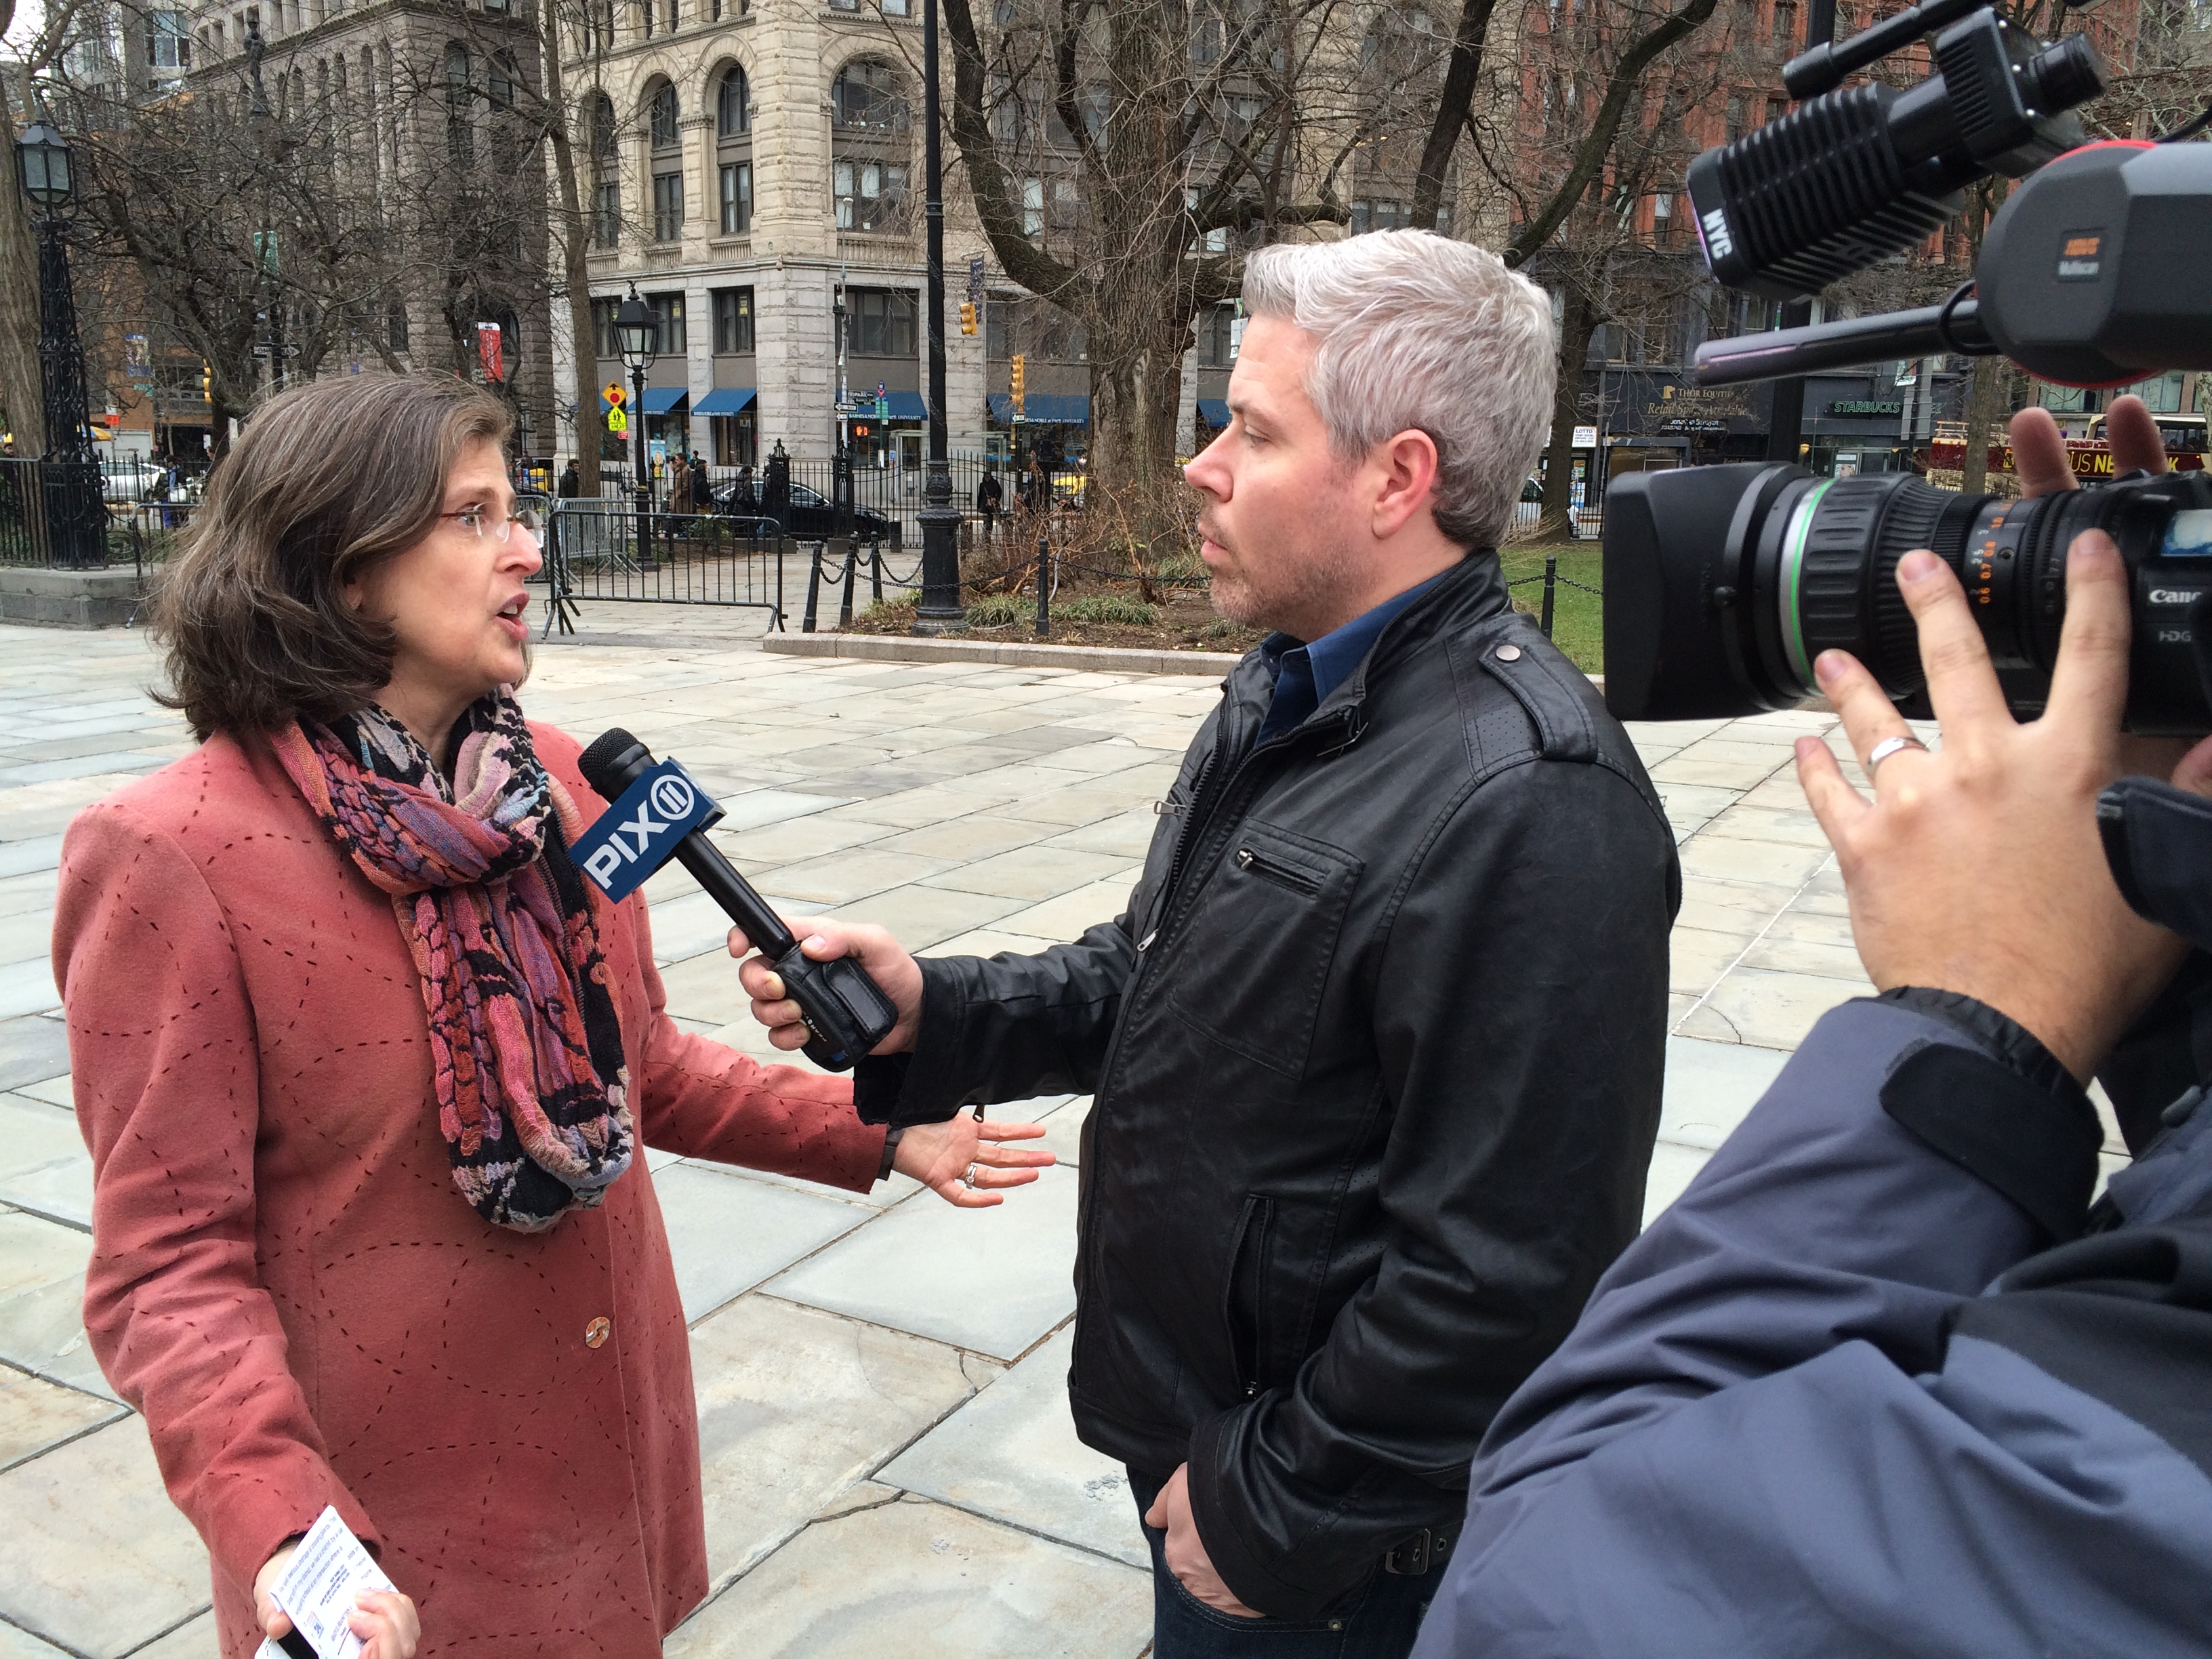 Helen speaks to Pix11 about the need for more funding for crossing guards